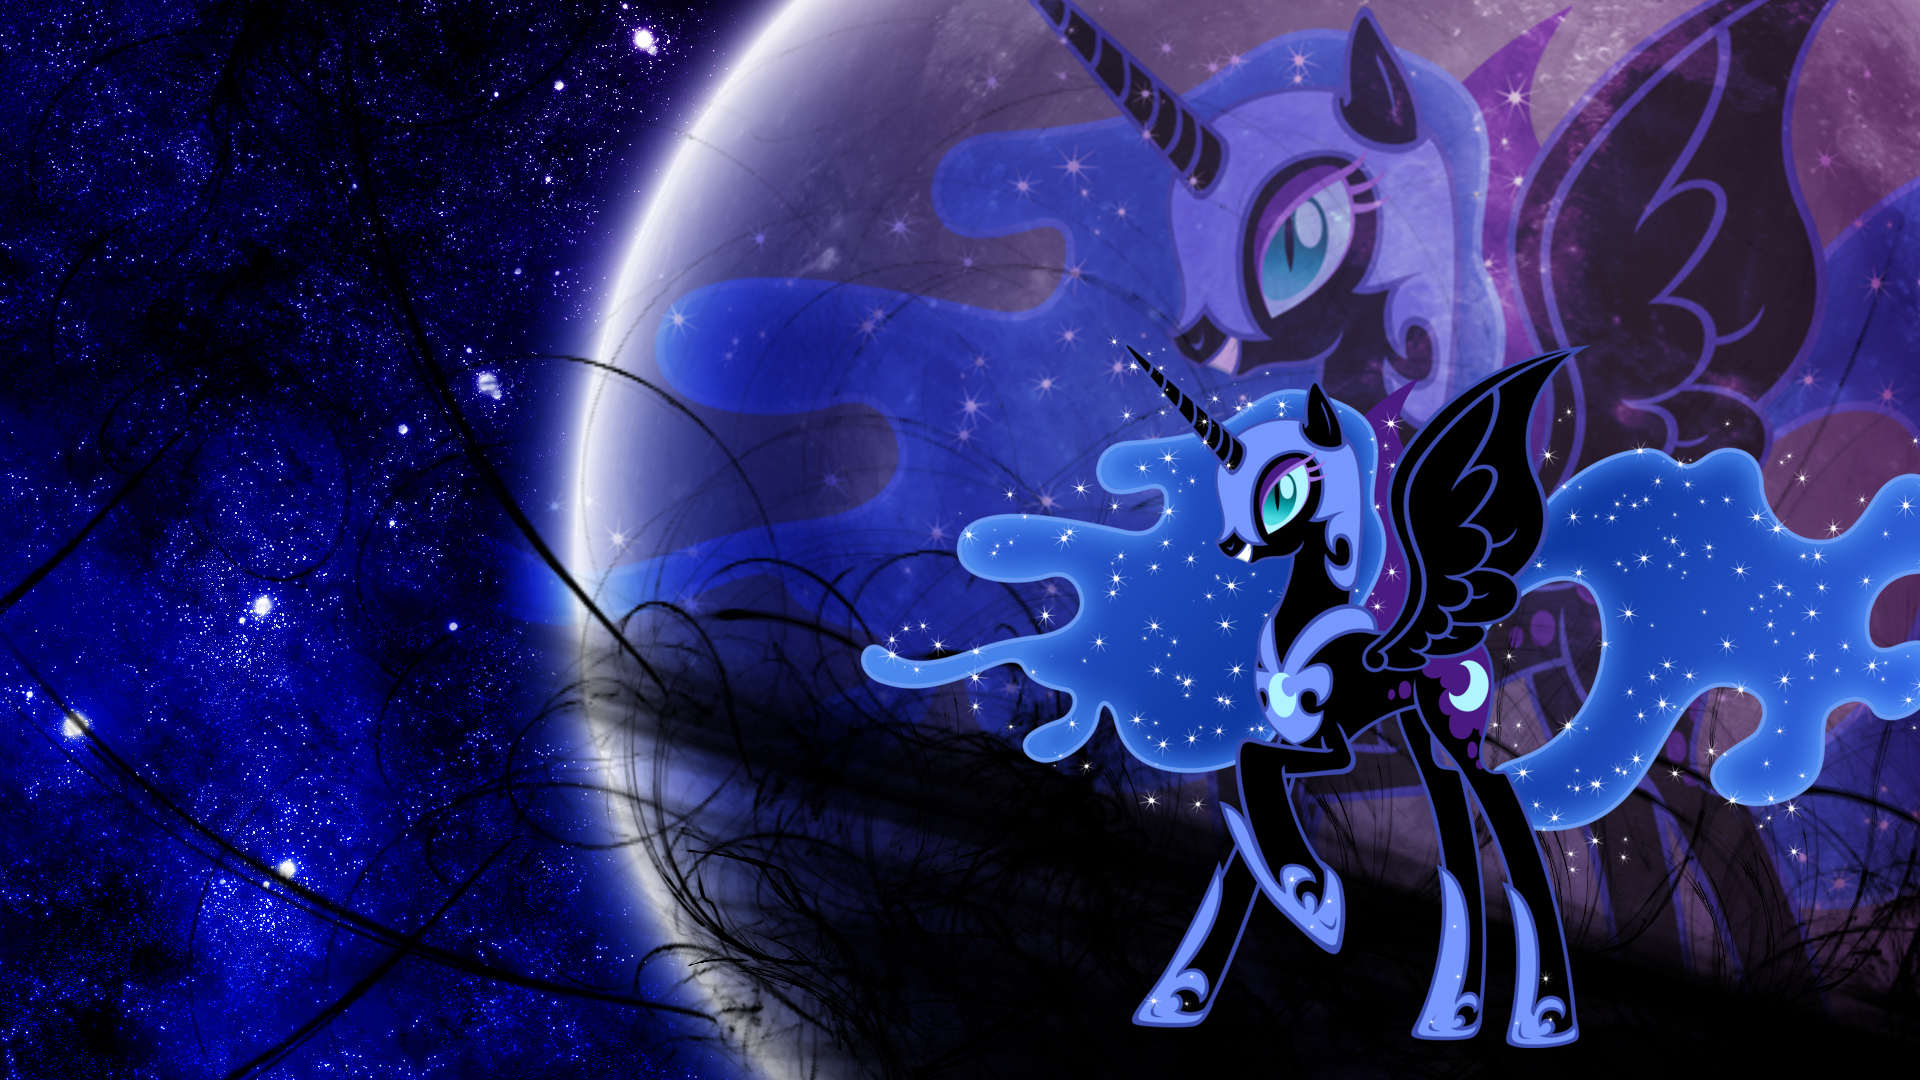 Nightmare Moon 3 (Wallpaper) by Hardii